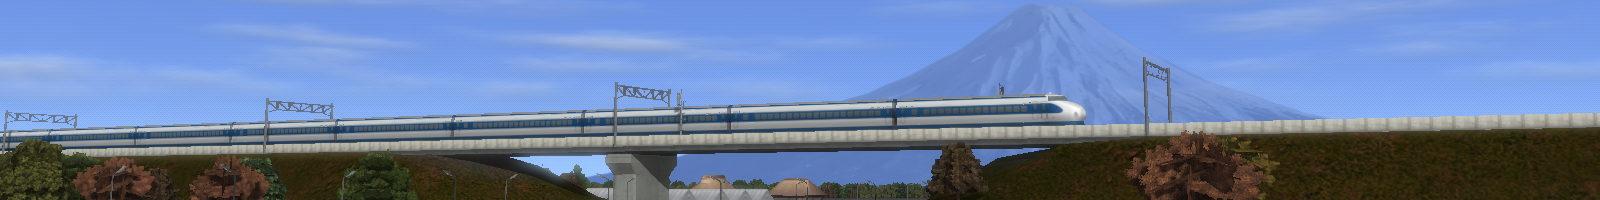 ATrain9.de